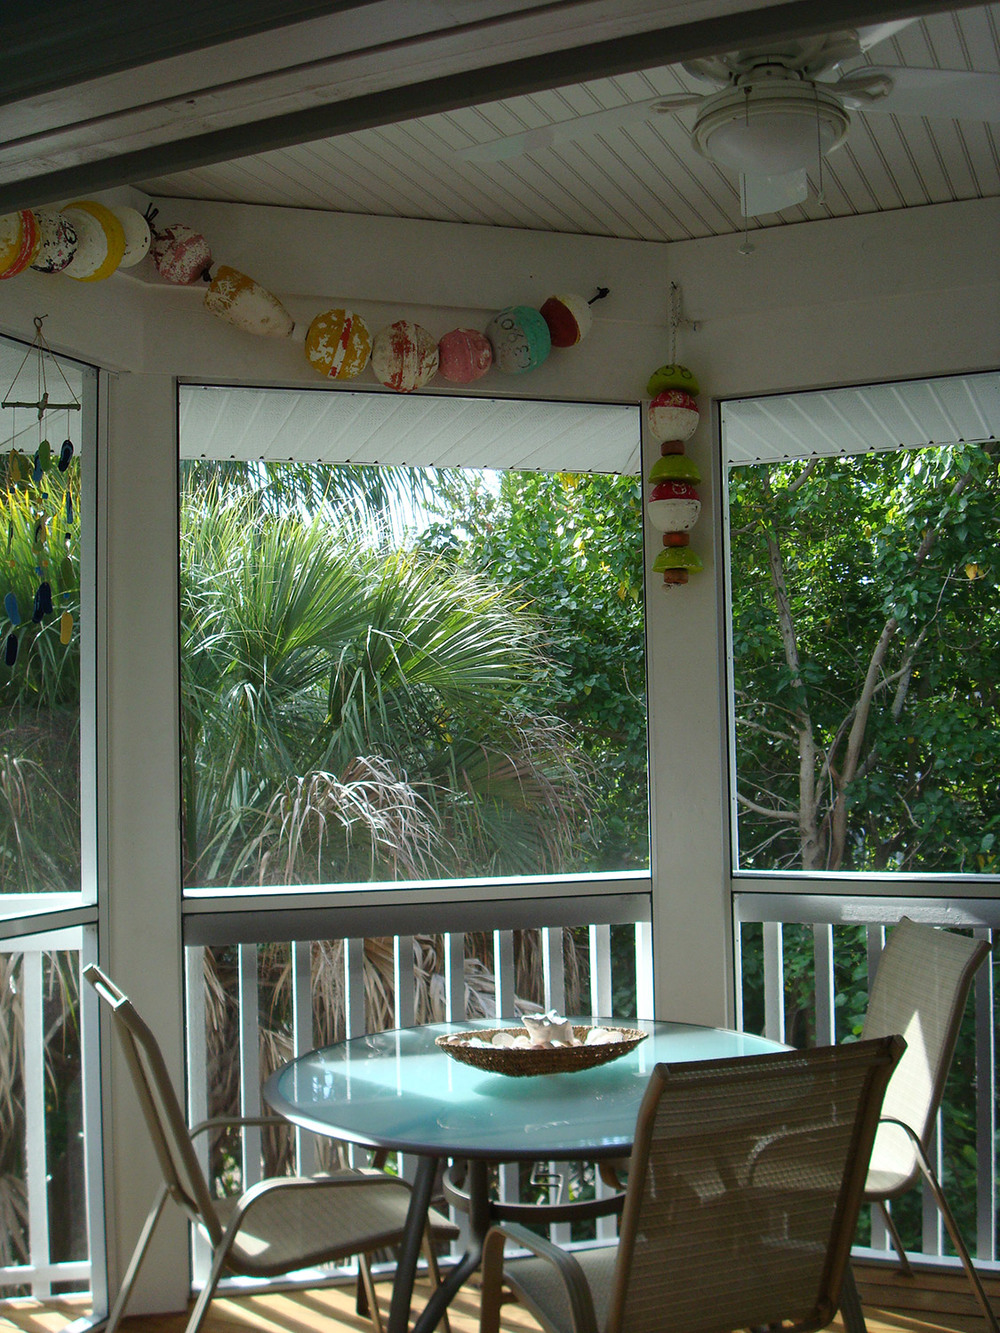 island-beach-house-screened-porch-renovation-eating-area-29.jpg